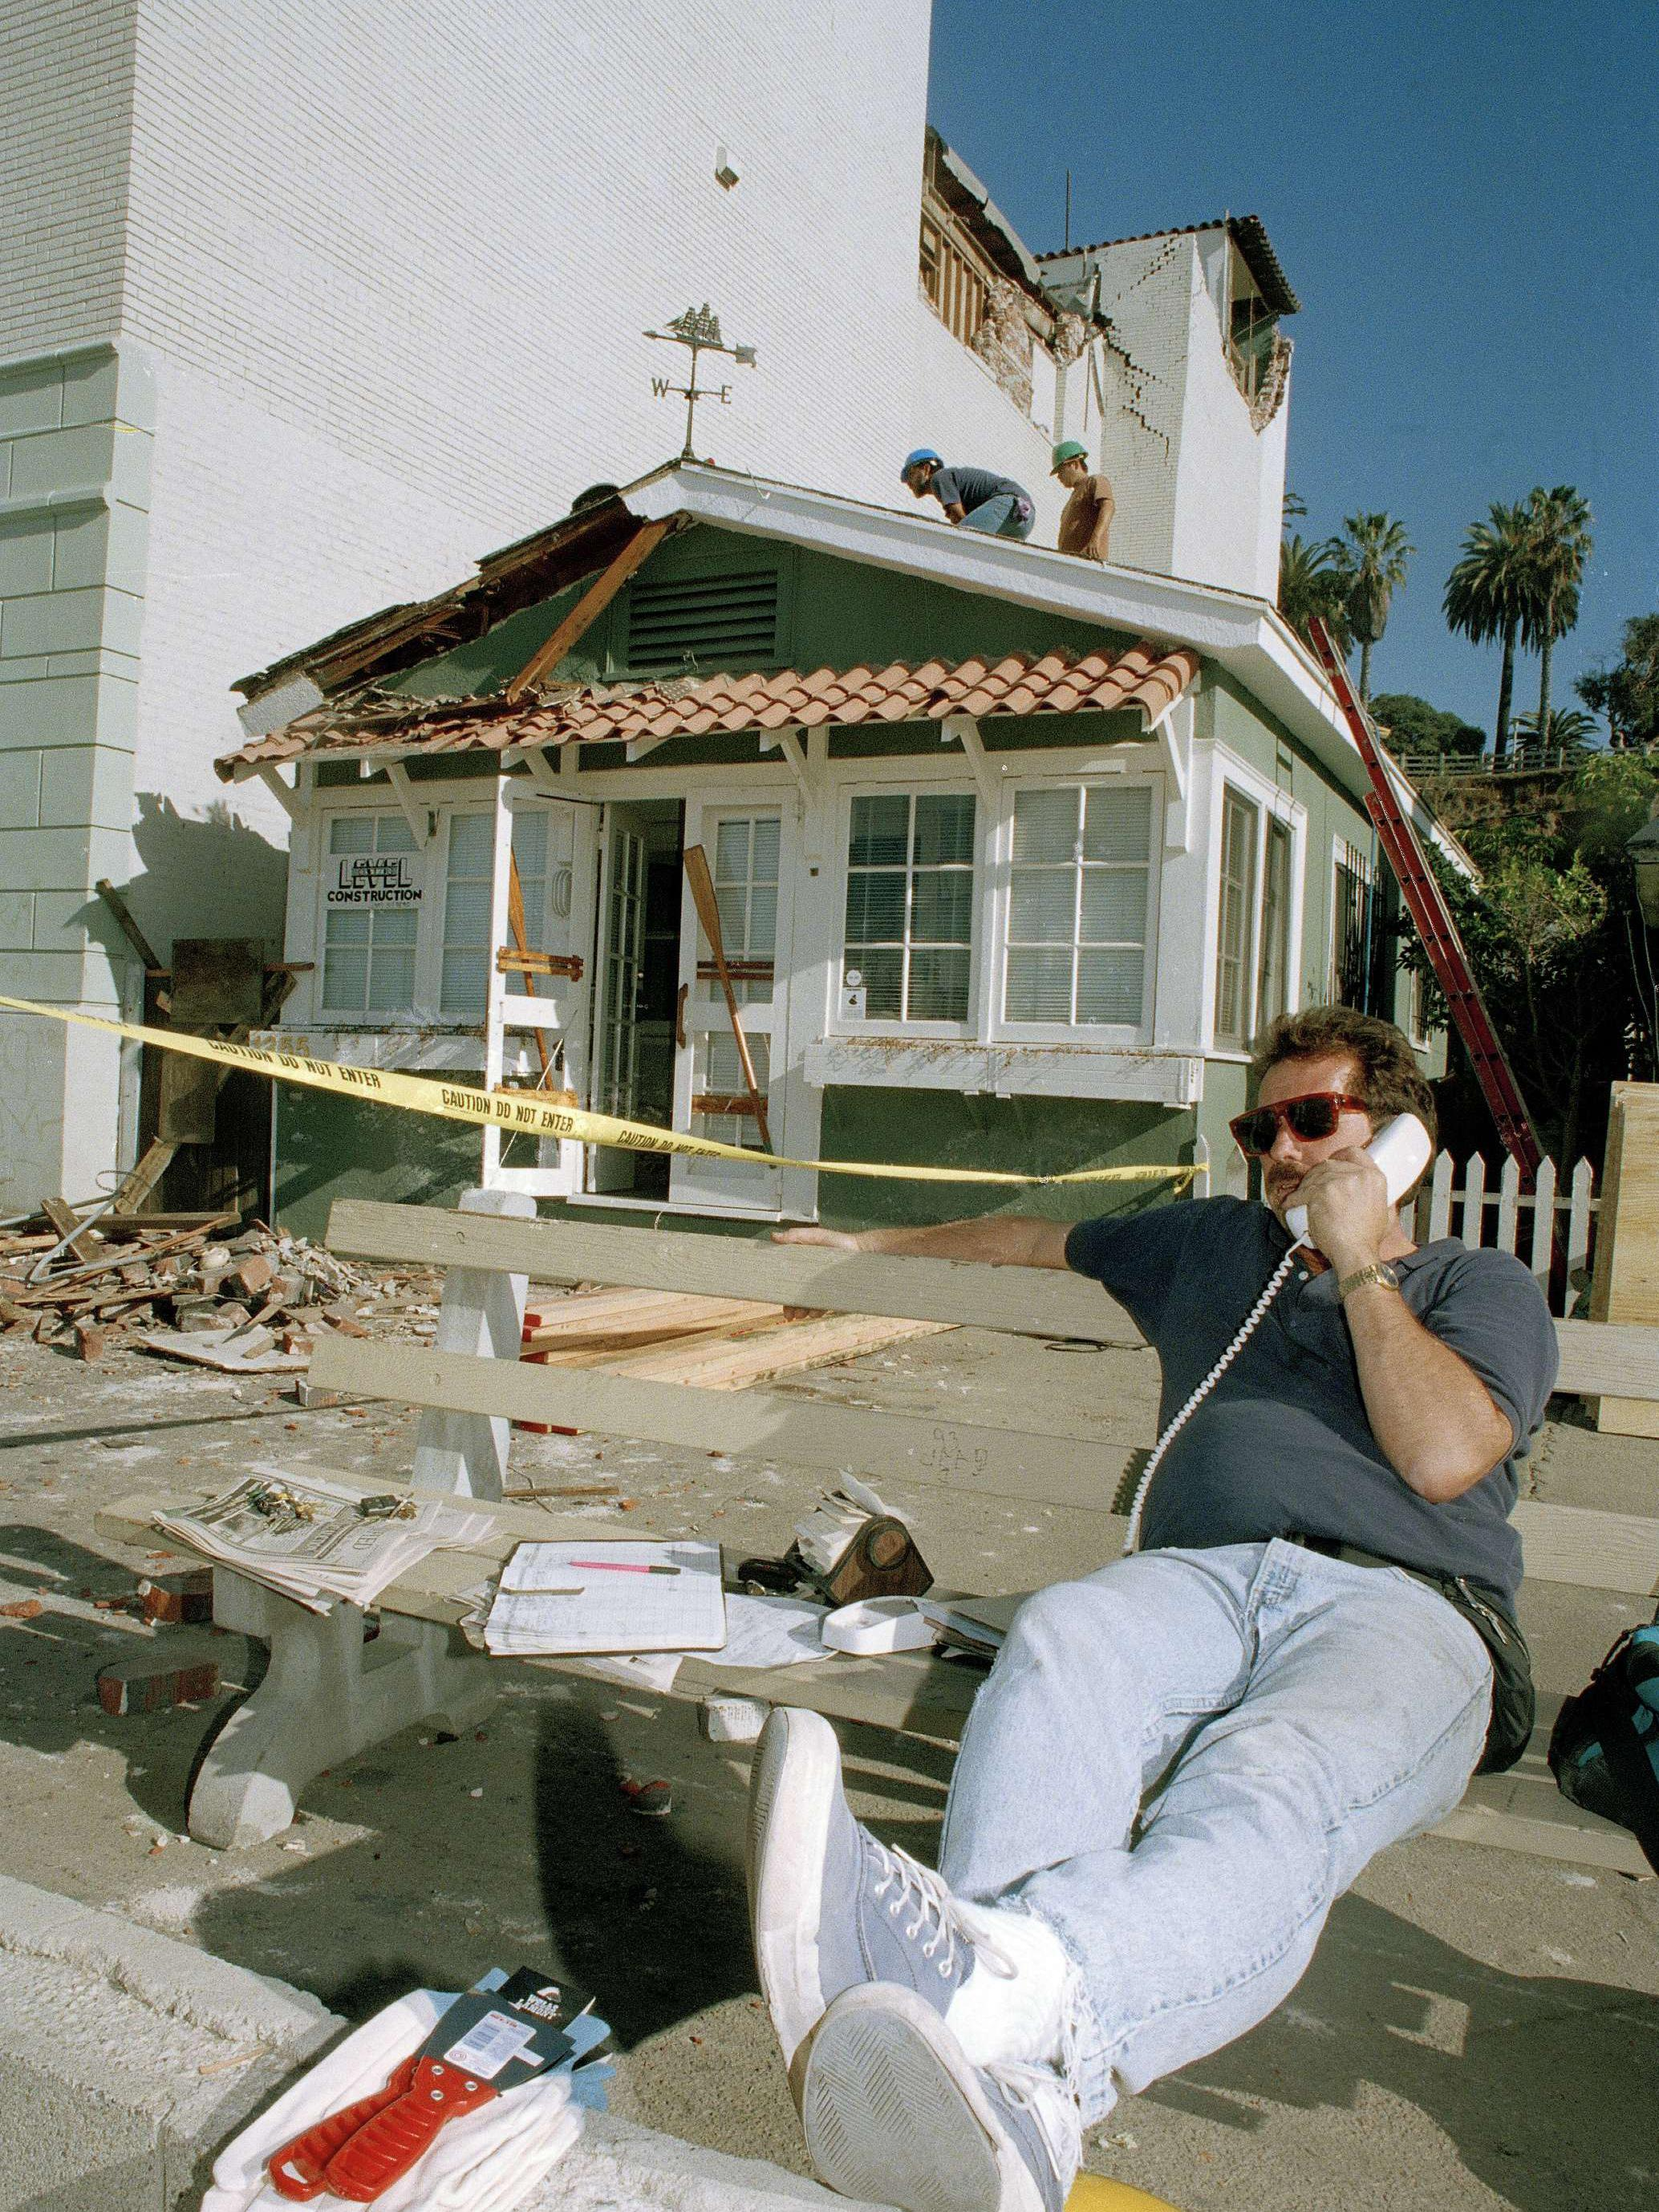 Quake Insurance? California Wants People To Say Yes To